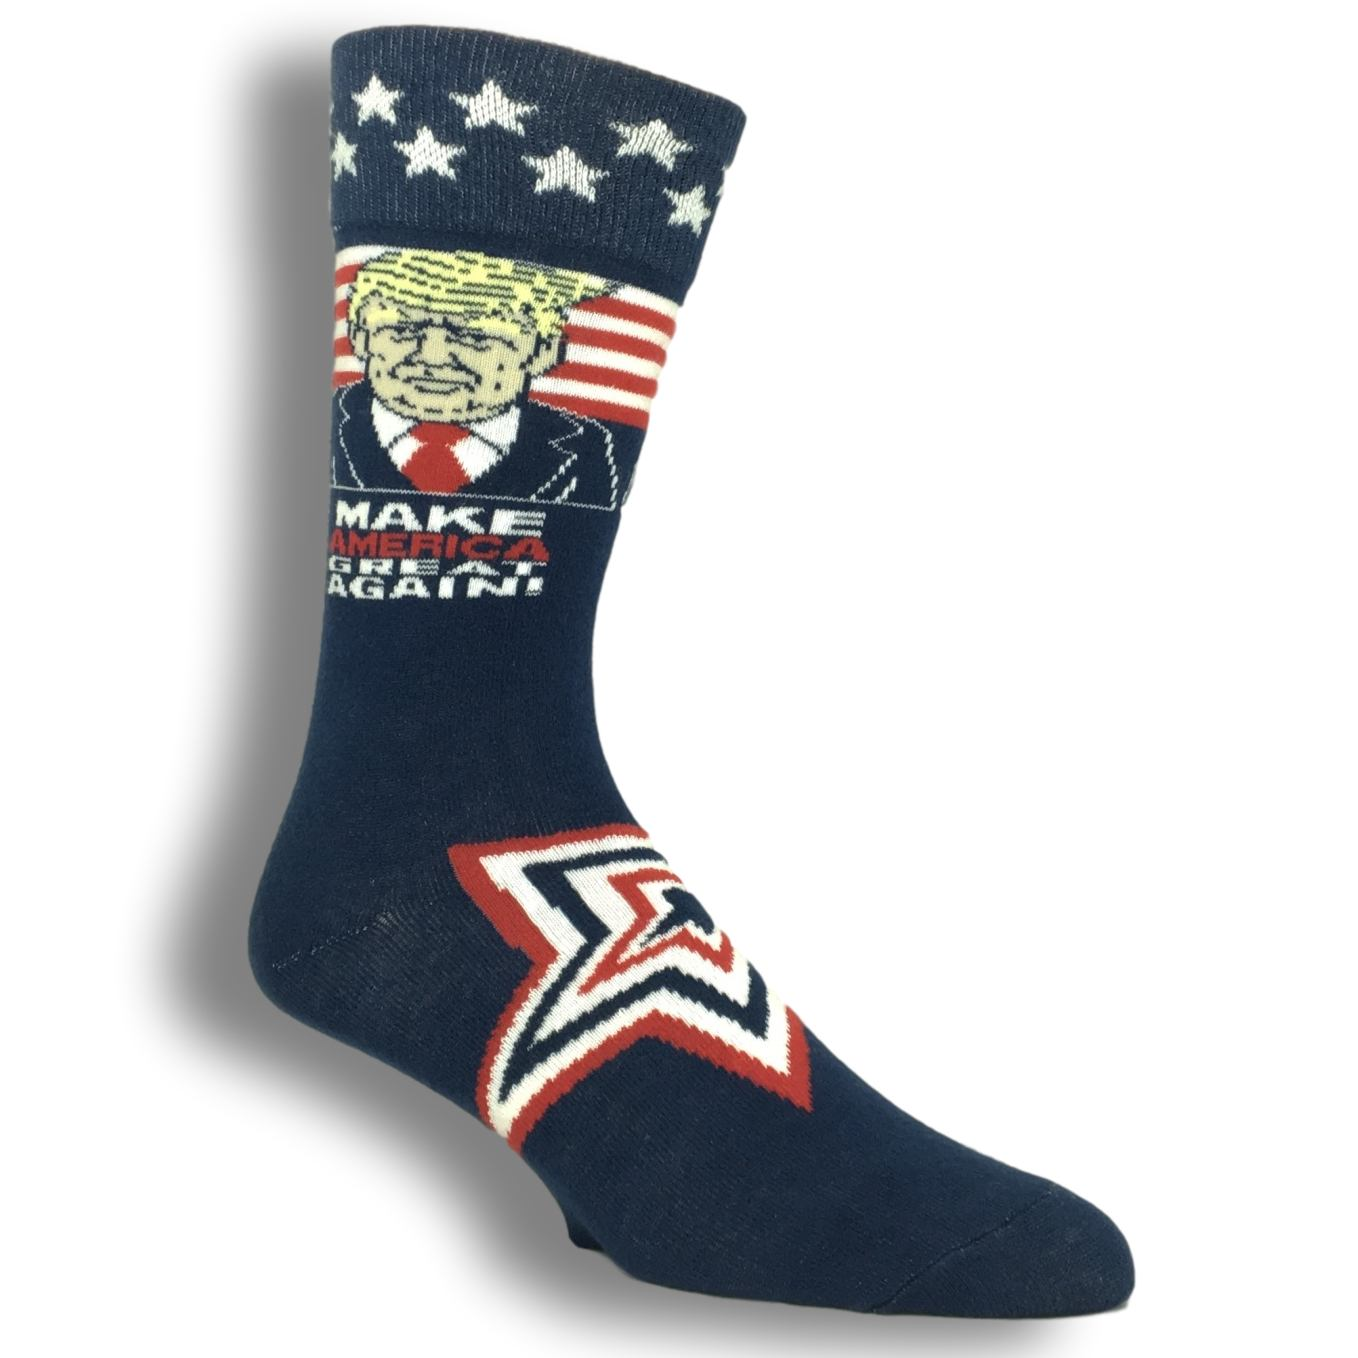 Donald Trump 2020 Socks Red White and Blue MAGA Free Shipping!